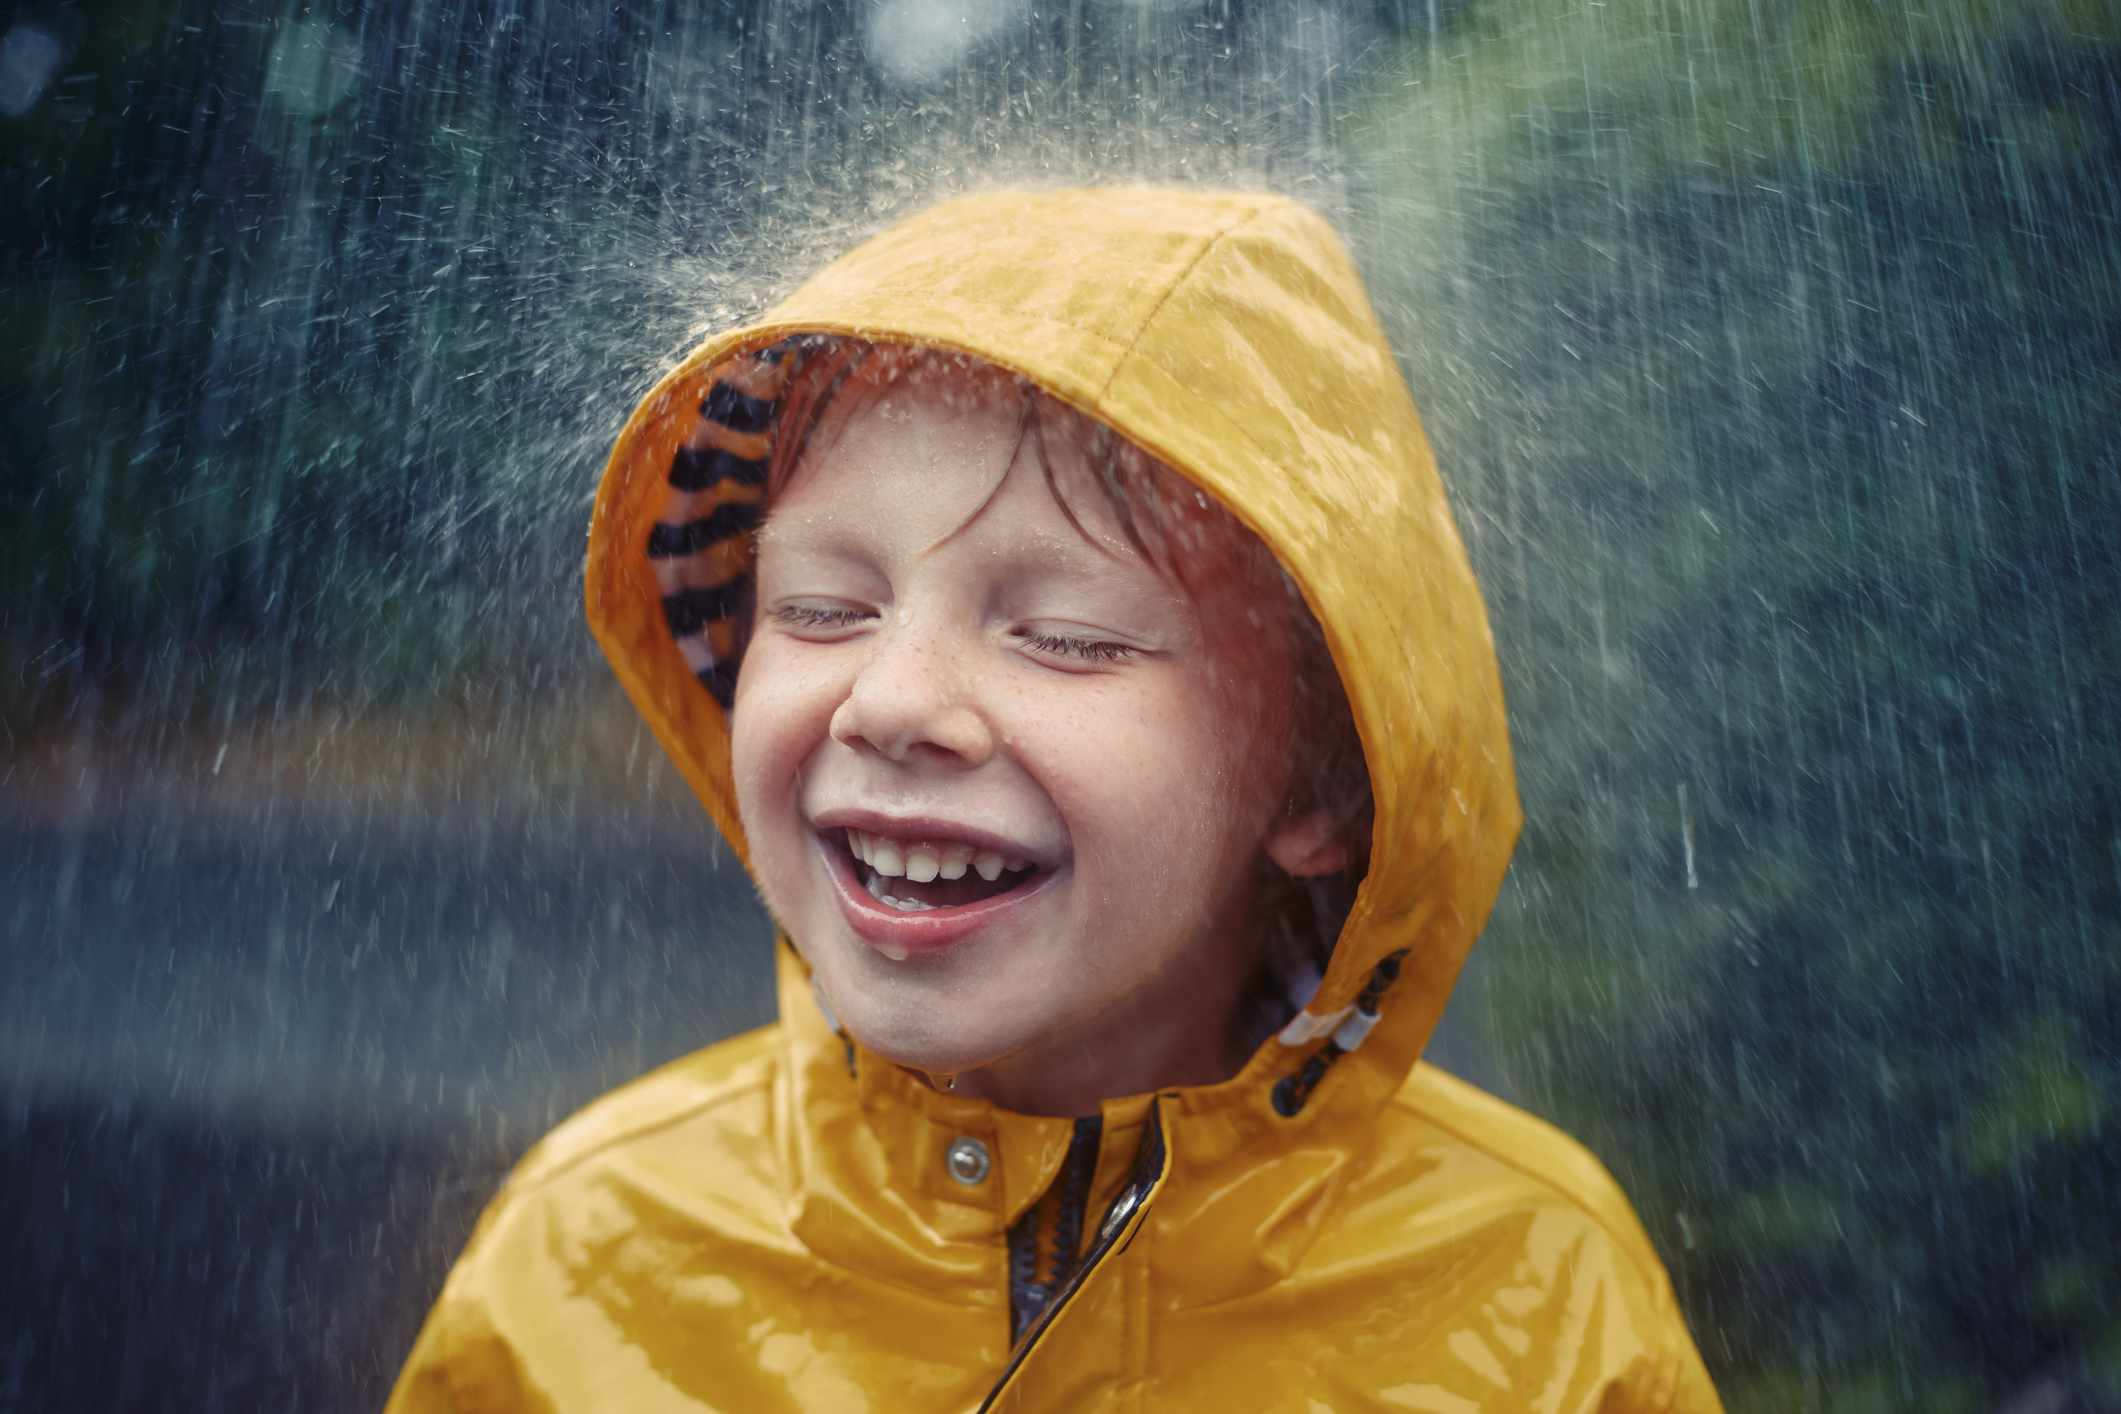 Happy smiling little boy out in the rain